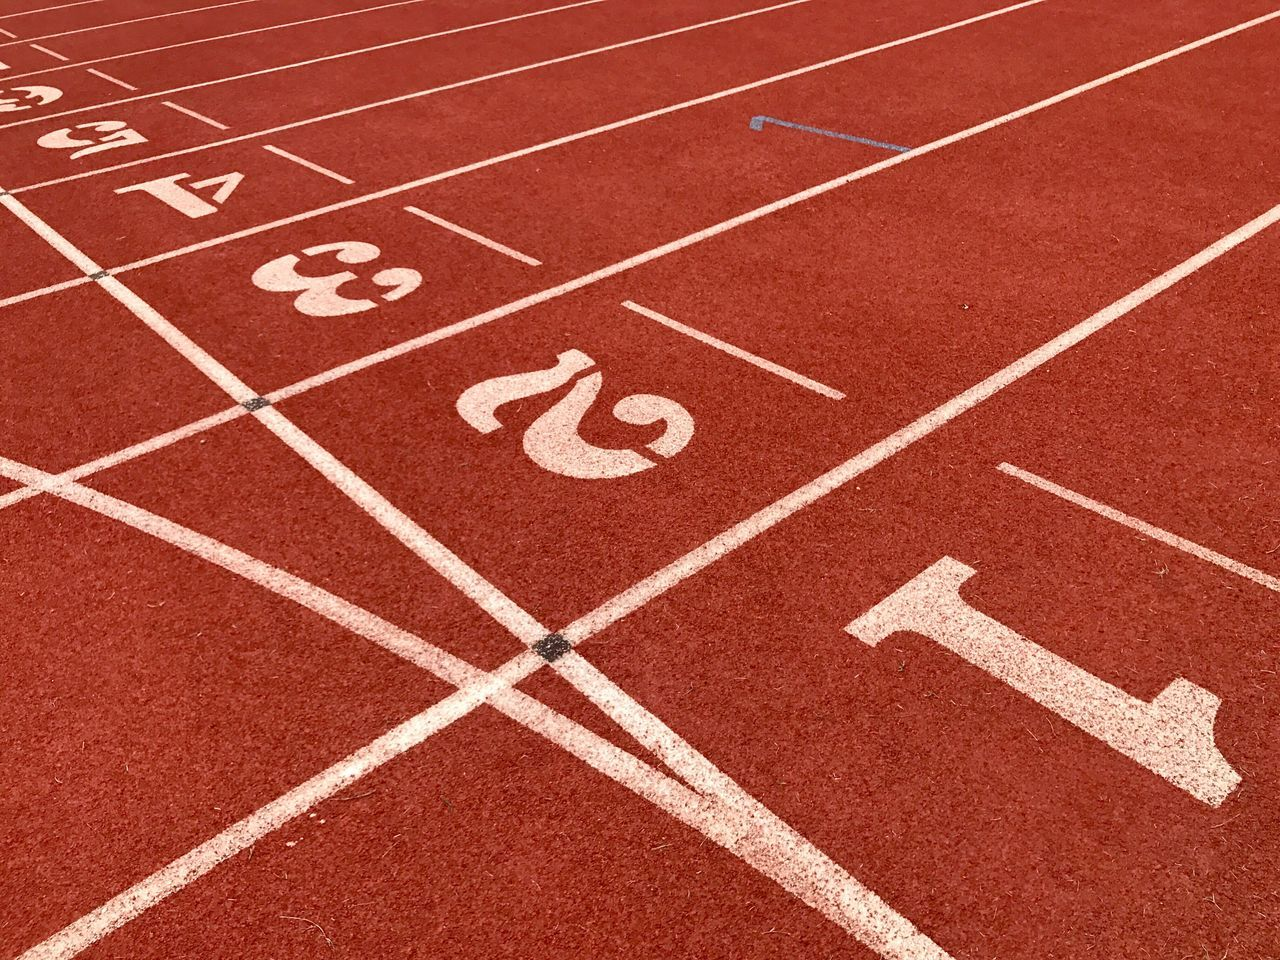 Running Track Sports Track Sports Race Track And Field Sport Competition Number Starting Line Competitive Sport Playing Field Sprinting Sports Venue Track And Field Stadium Healthy Lifestyle Red No People Outdoors Exercising Track Event Stadium